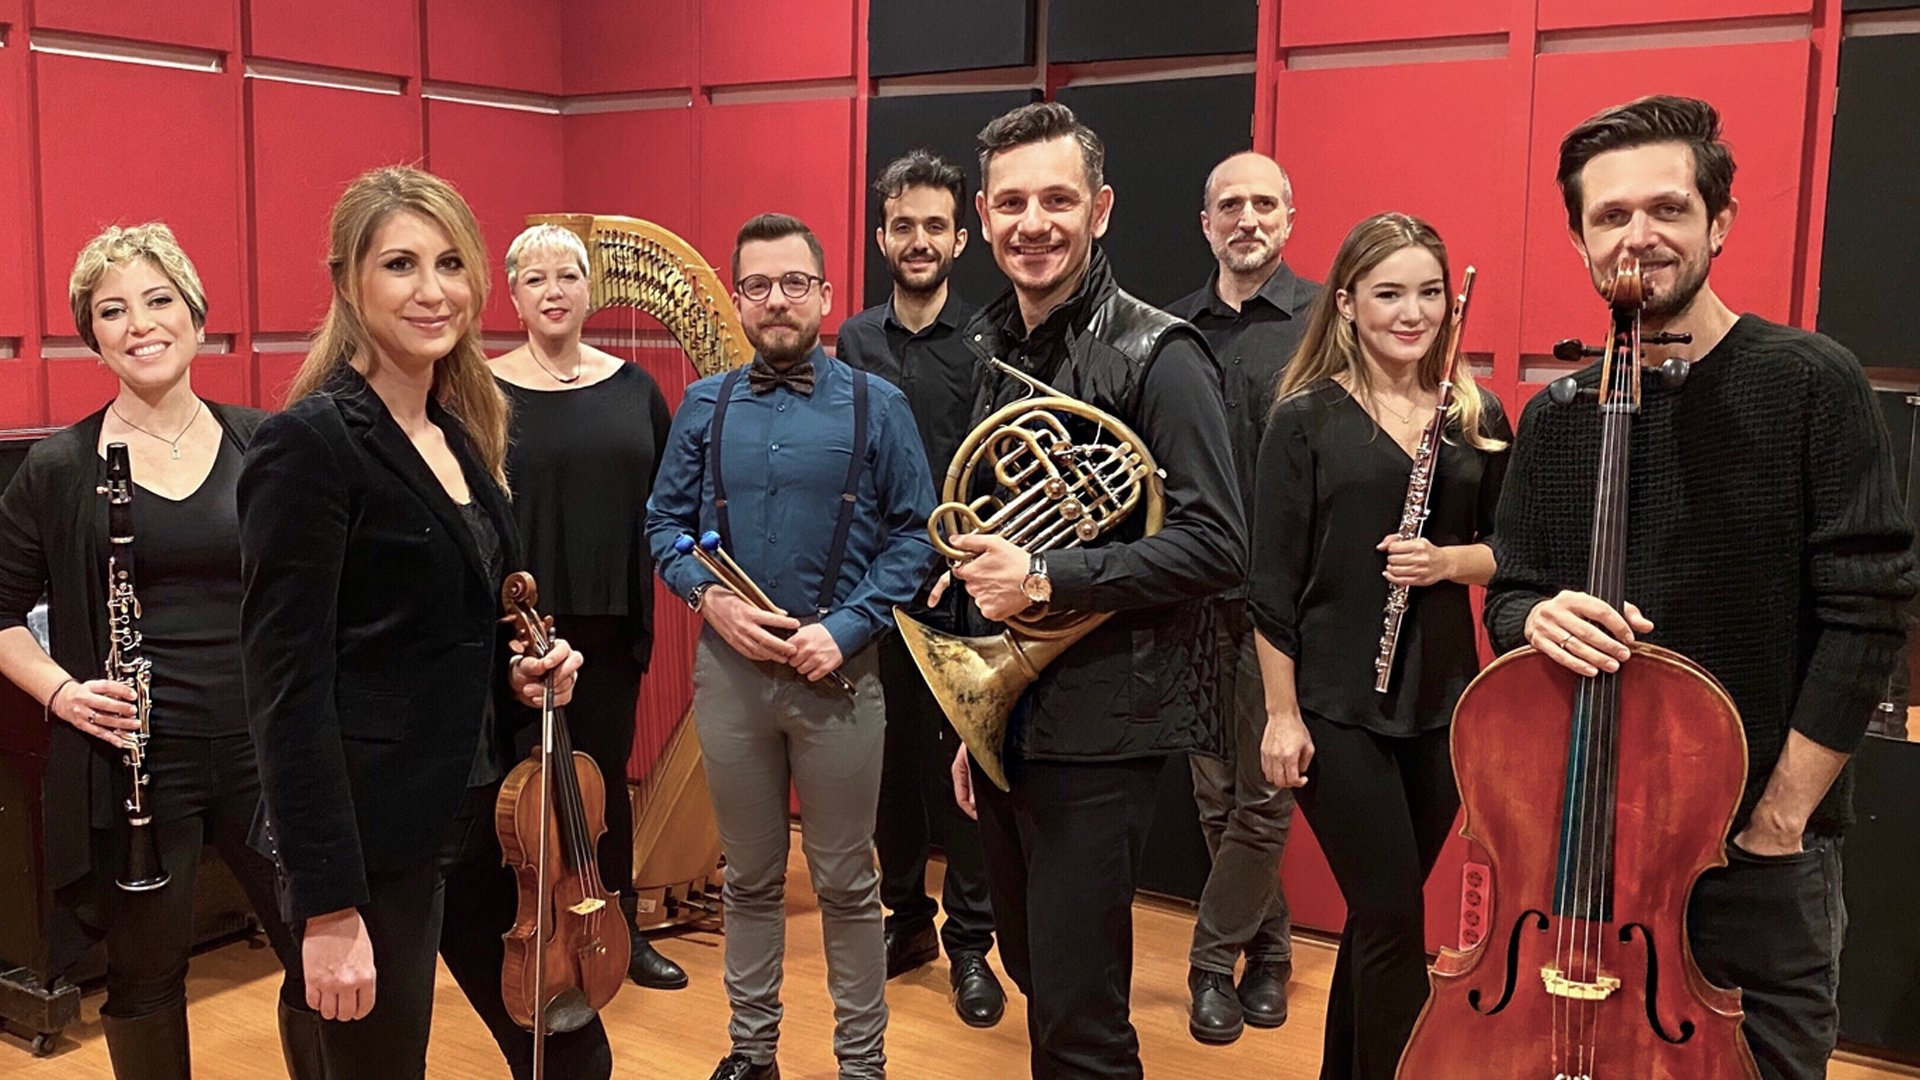 Talented members of the Diskant Contemporary Music Ensemble will perform the works of Turkish composer Ilhan Usmanbaş at the Istanbul Music Festival.  (Courtesy of IKSV)